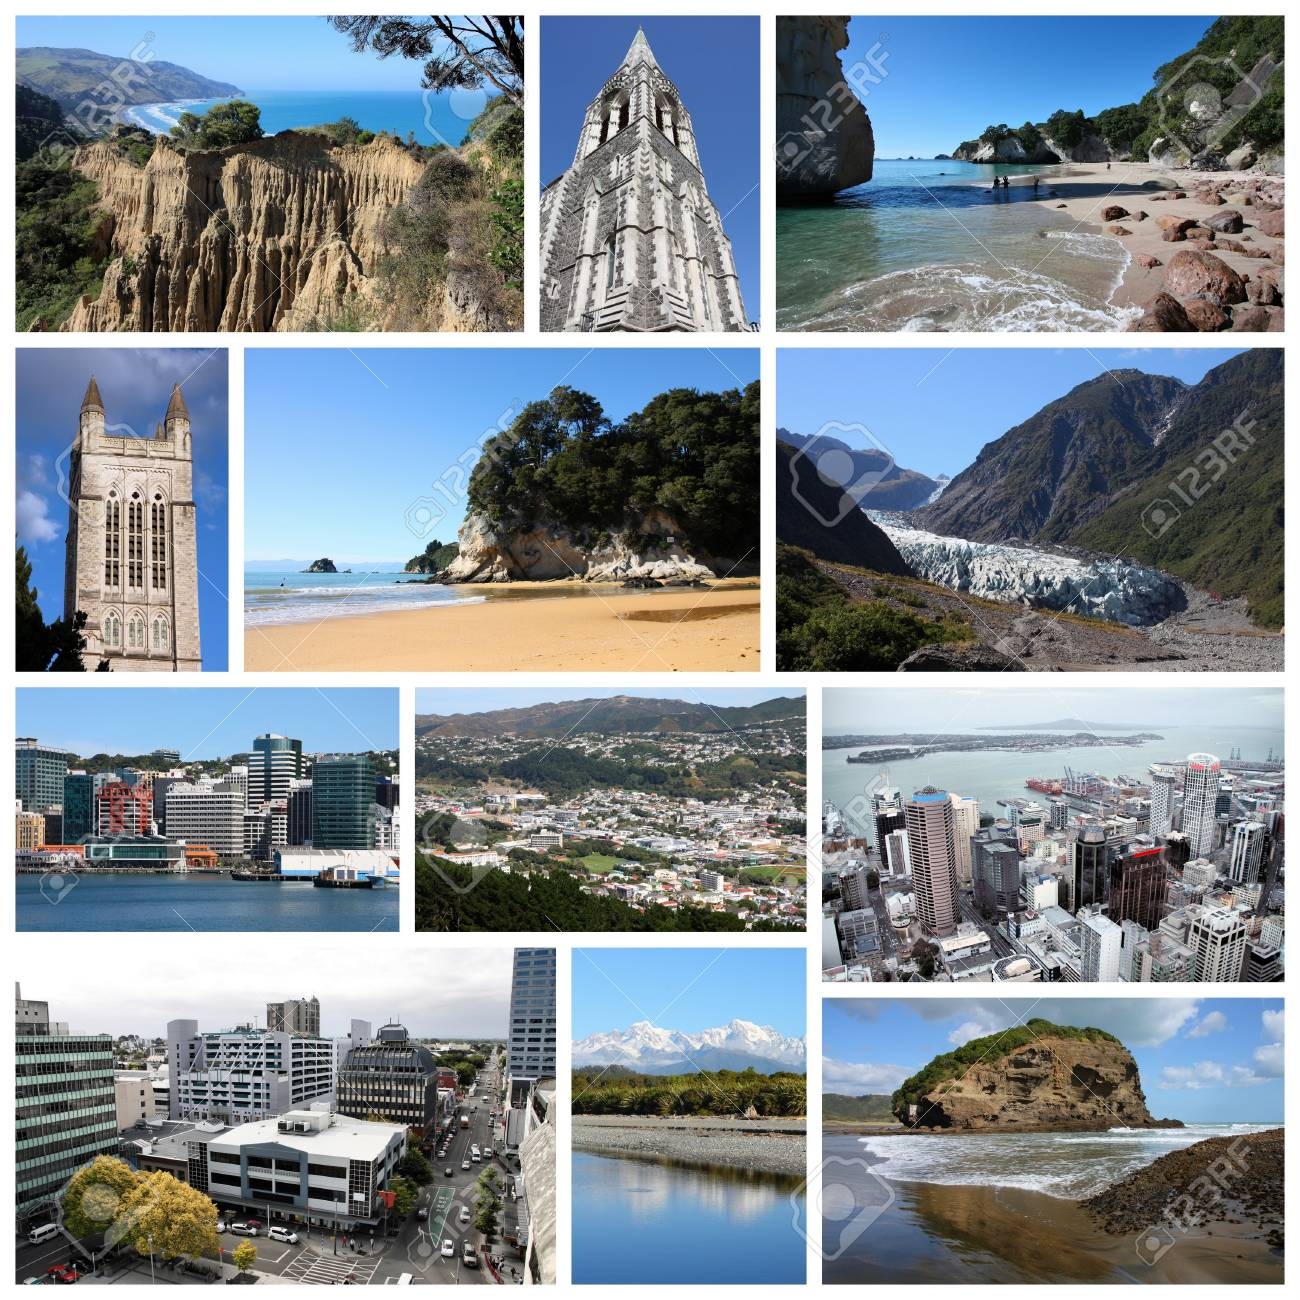 New Zealand Tourism Attractions Travel Photo Collage With Auckland